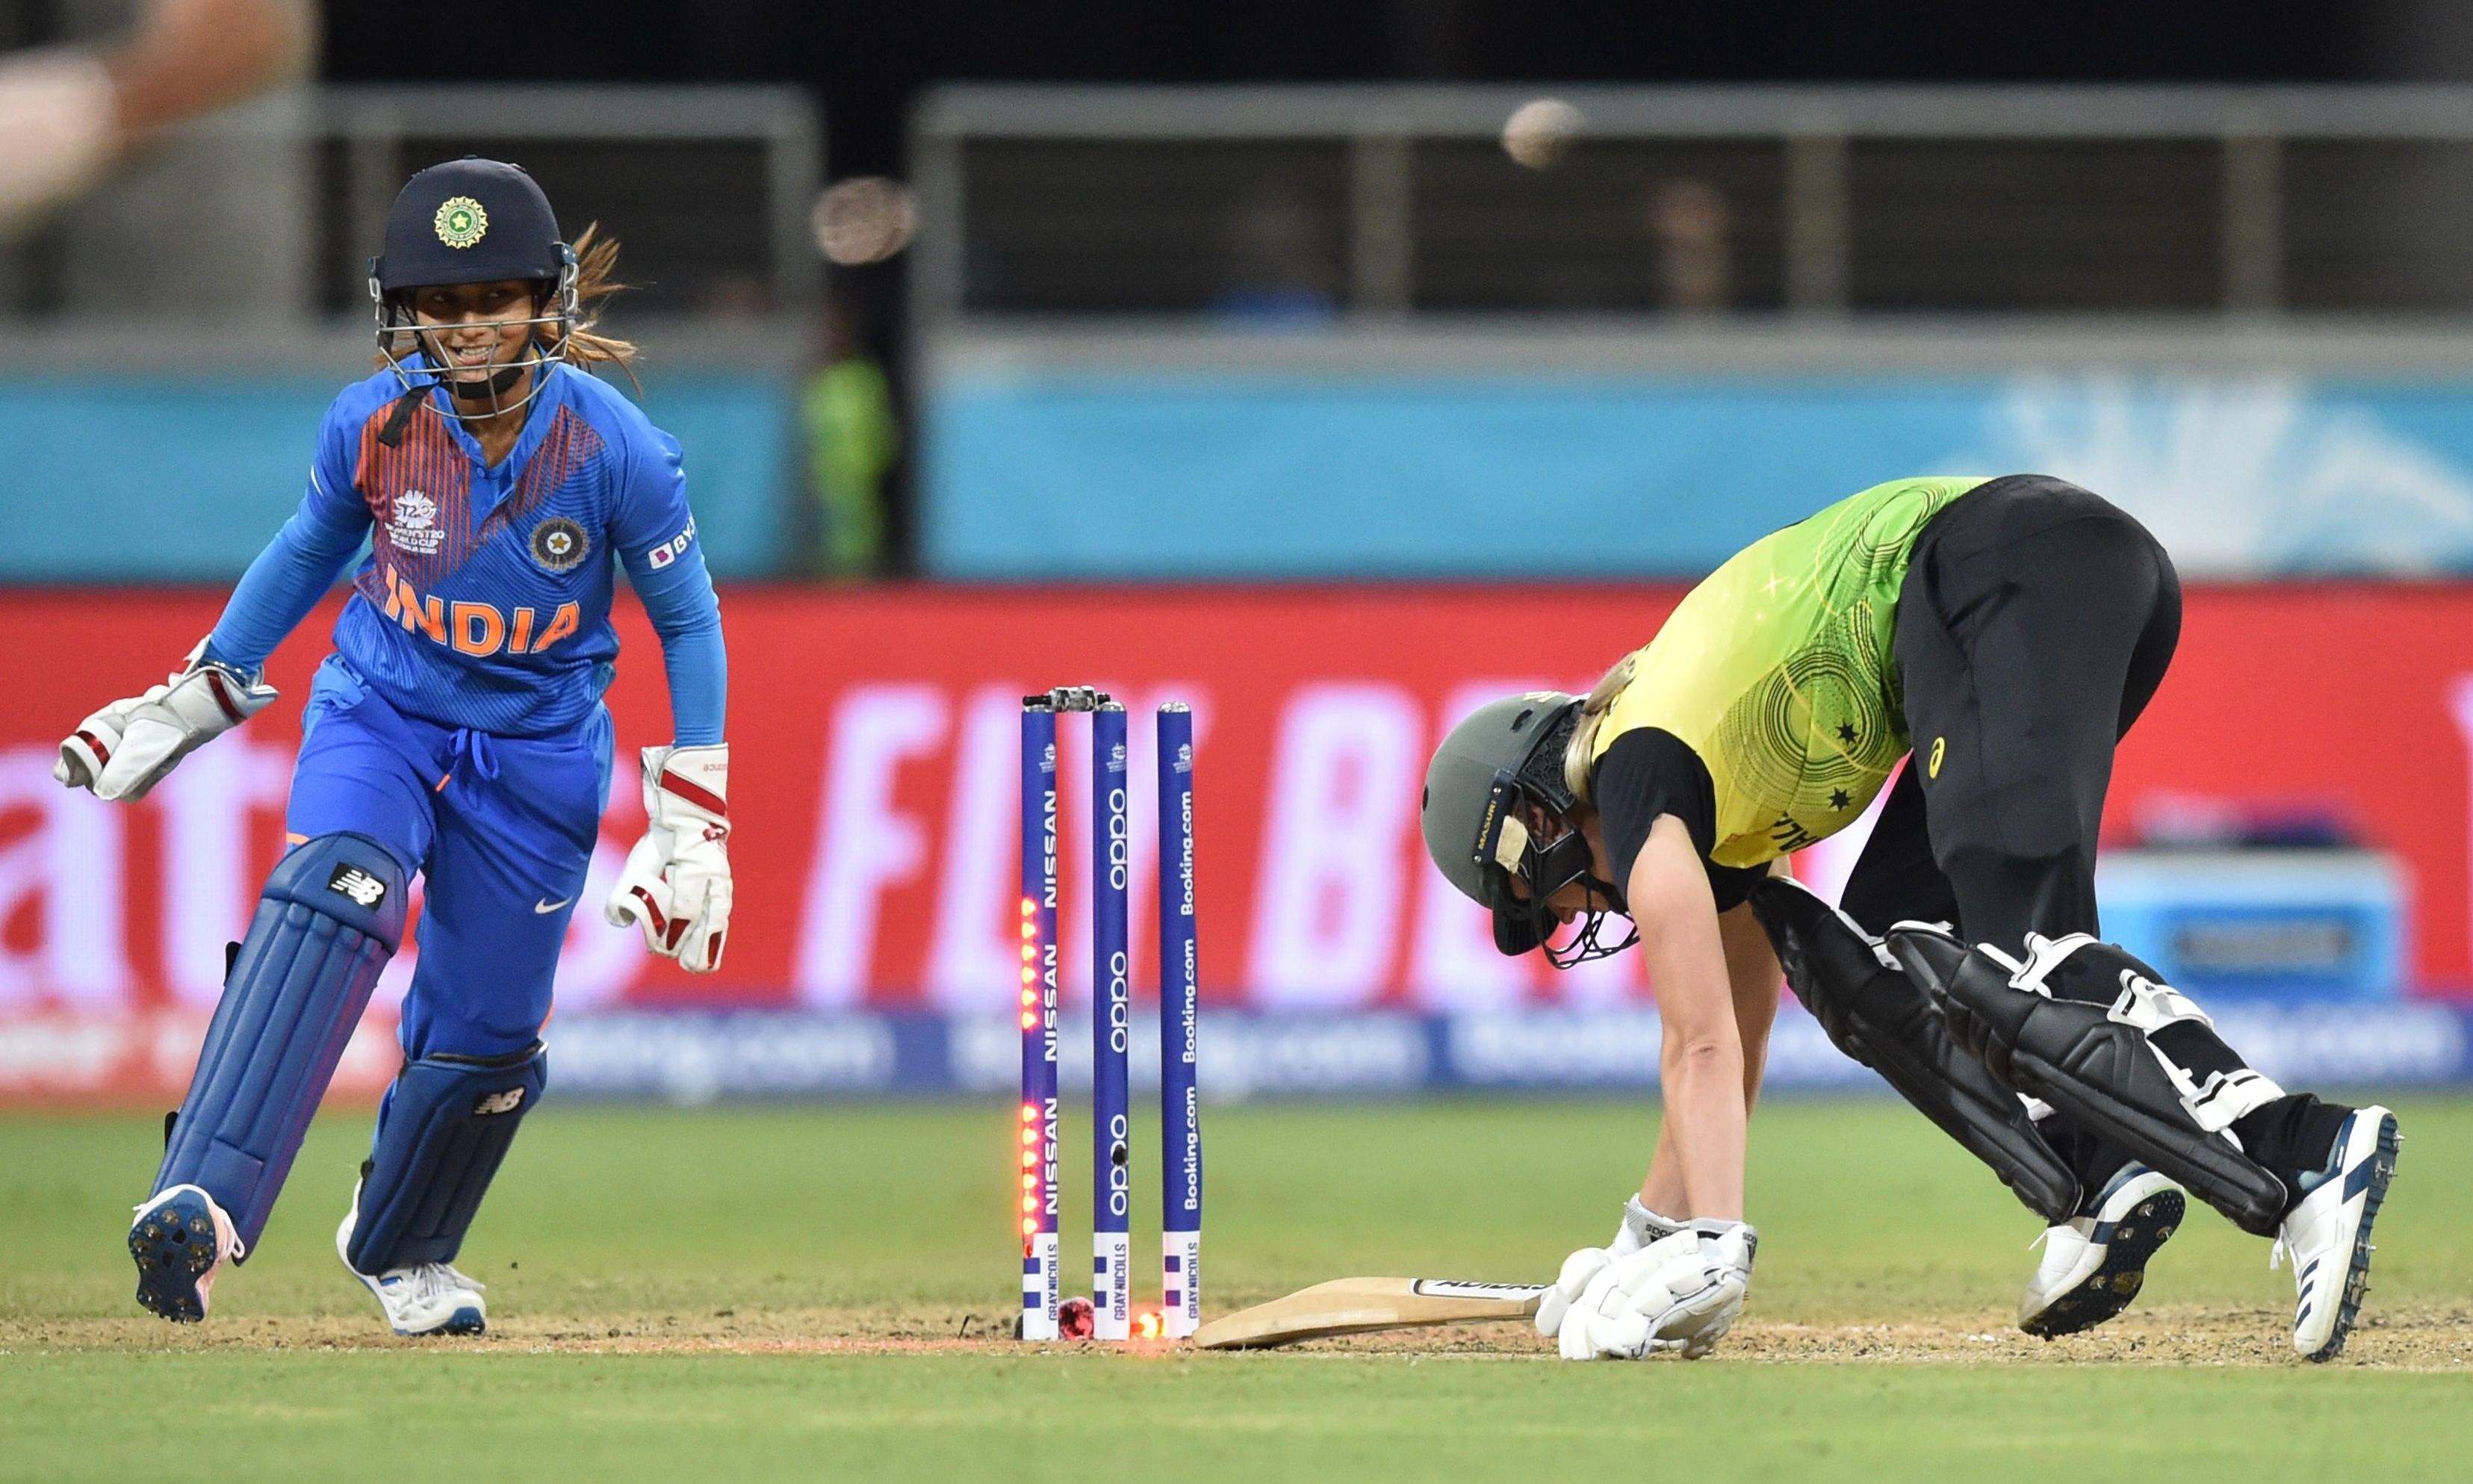 Australia bamboozled by Yadav as India cause upset in T20 World Cup opener